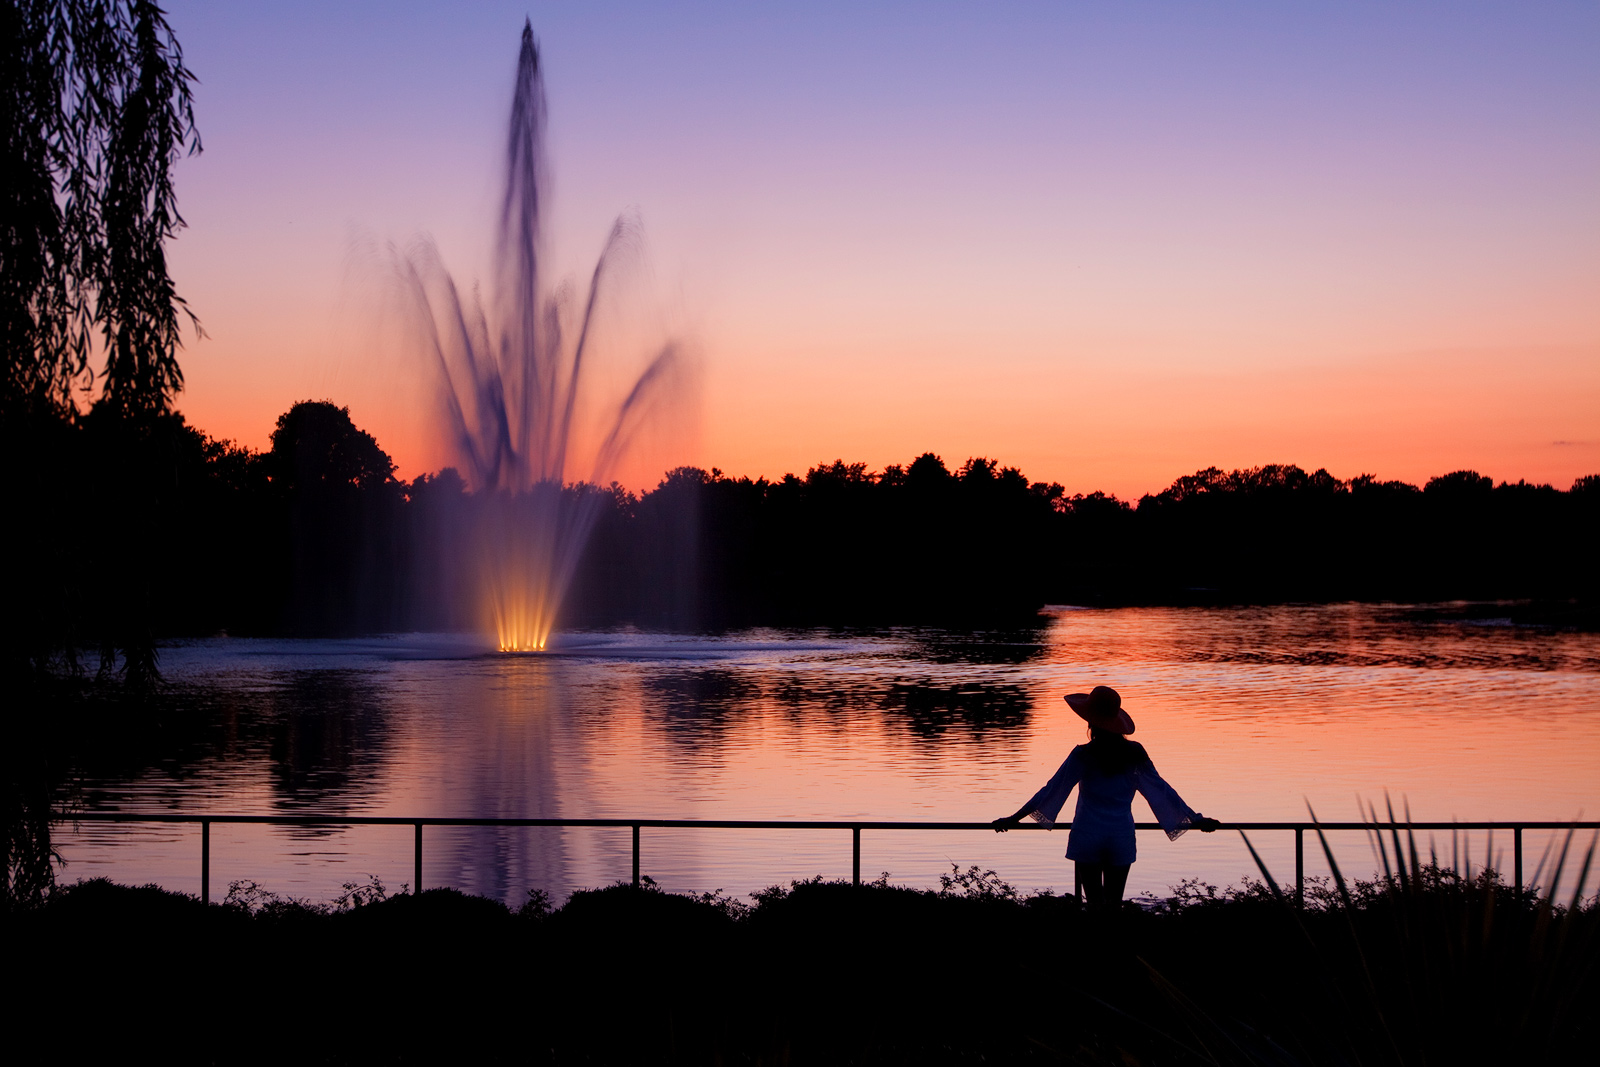 america,beautiful,botanic gardens,female,fountain,horizontal,il,illinois,lady,midwest,north america,pond,sunset,united states,us,usa,woman, photo